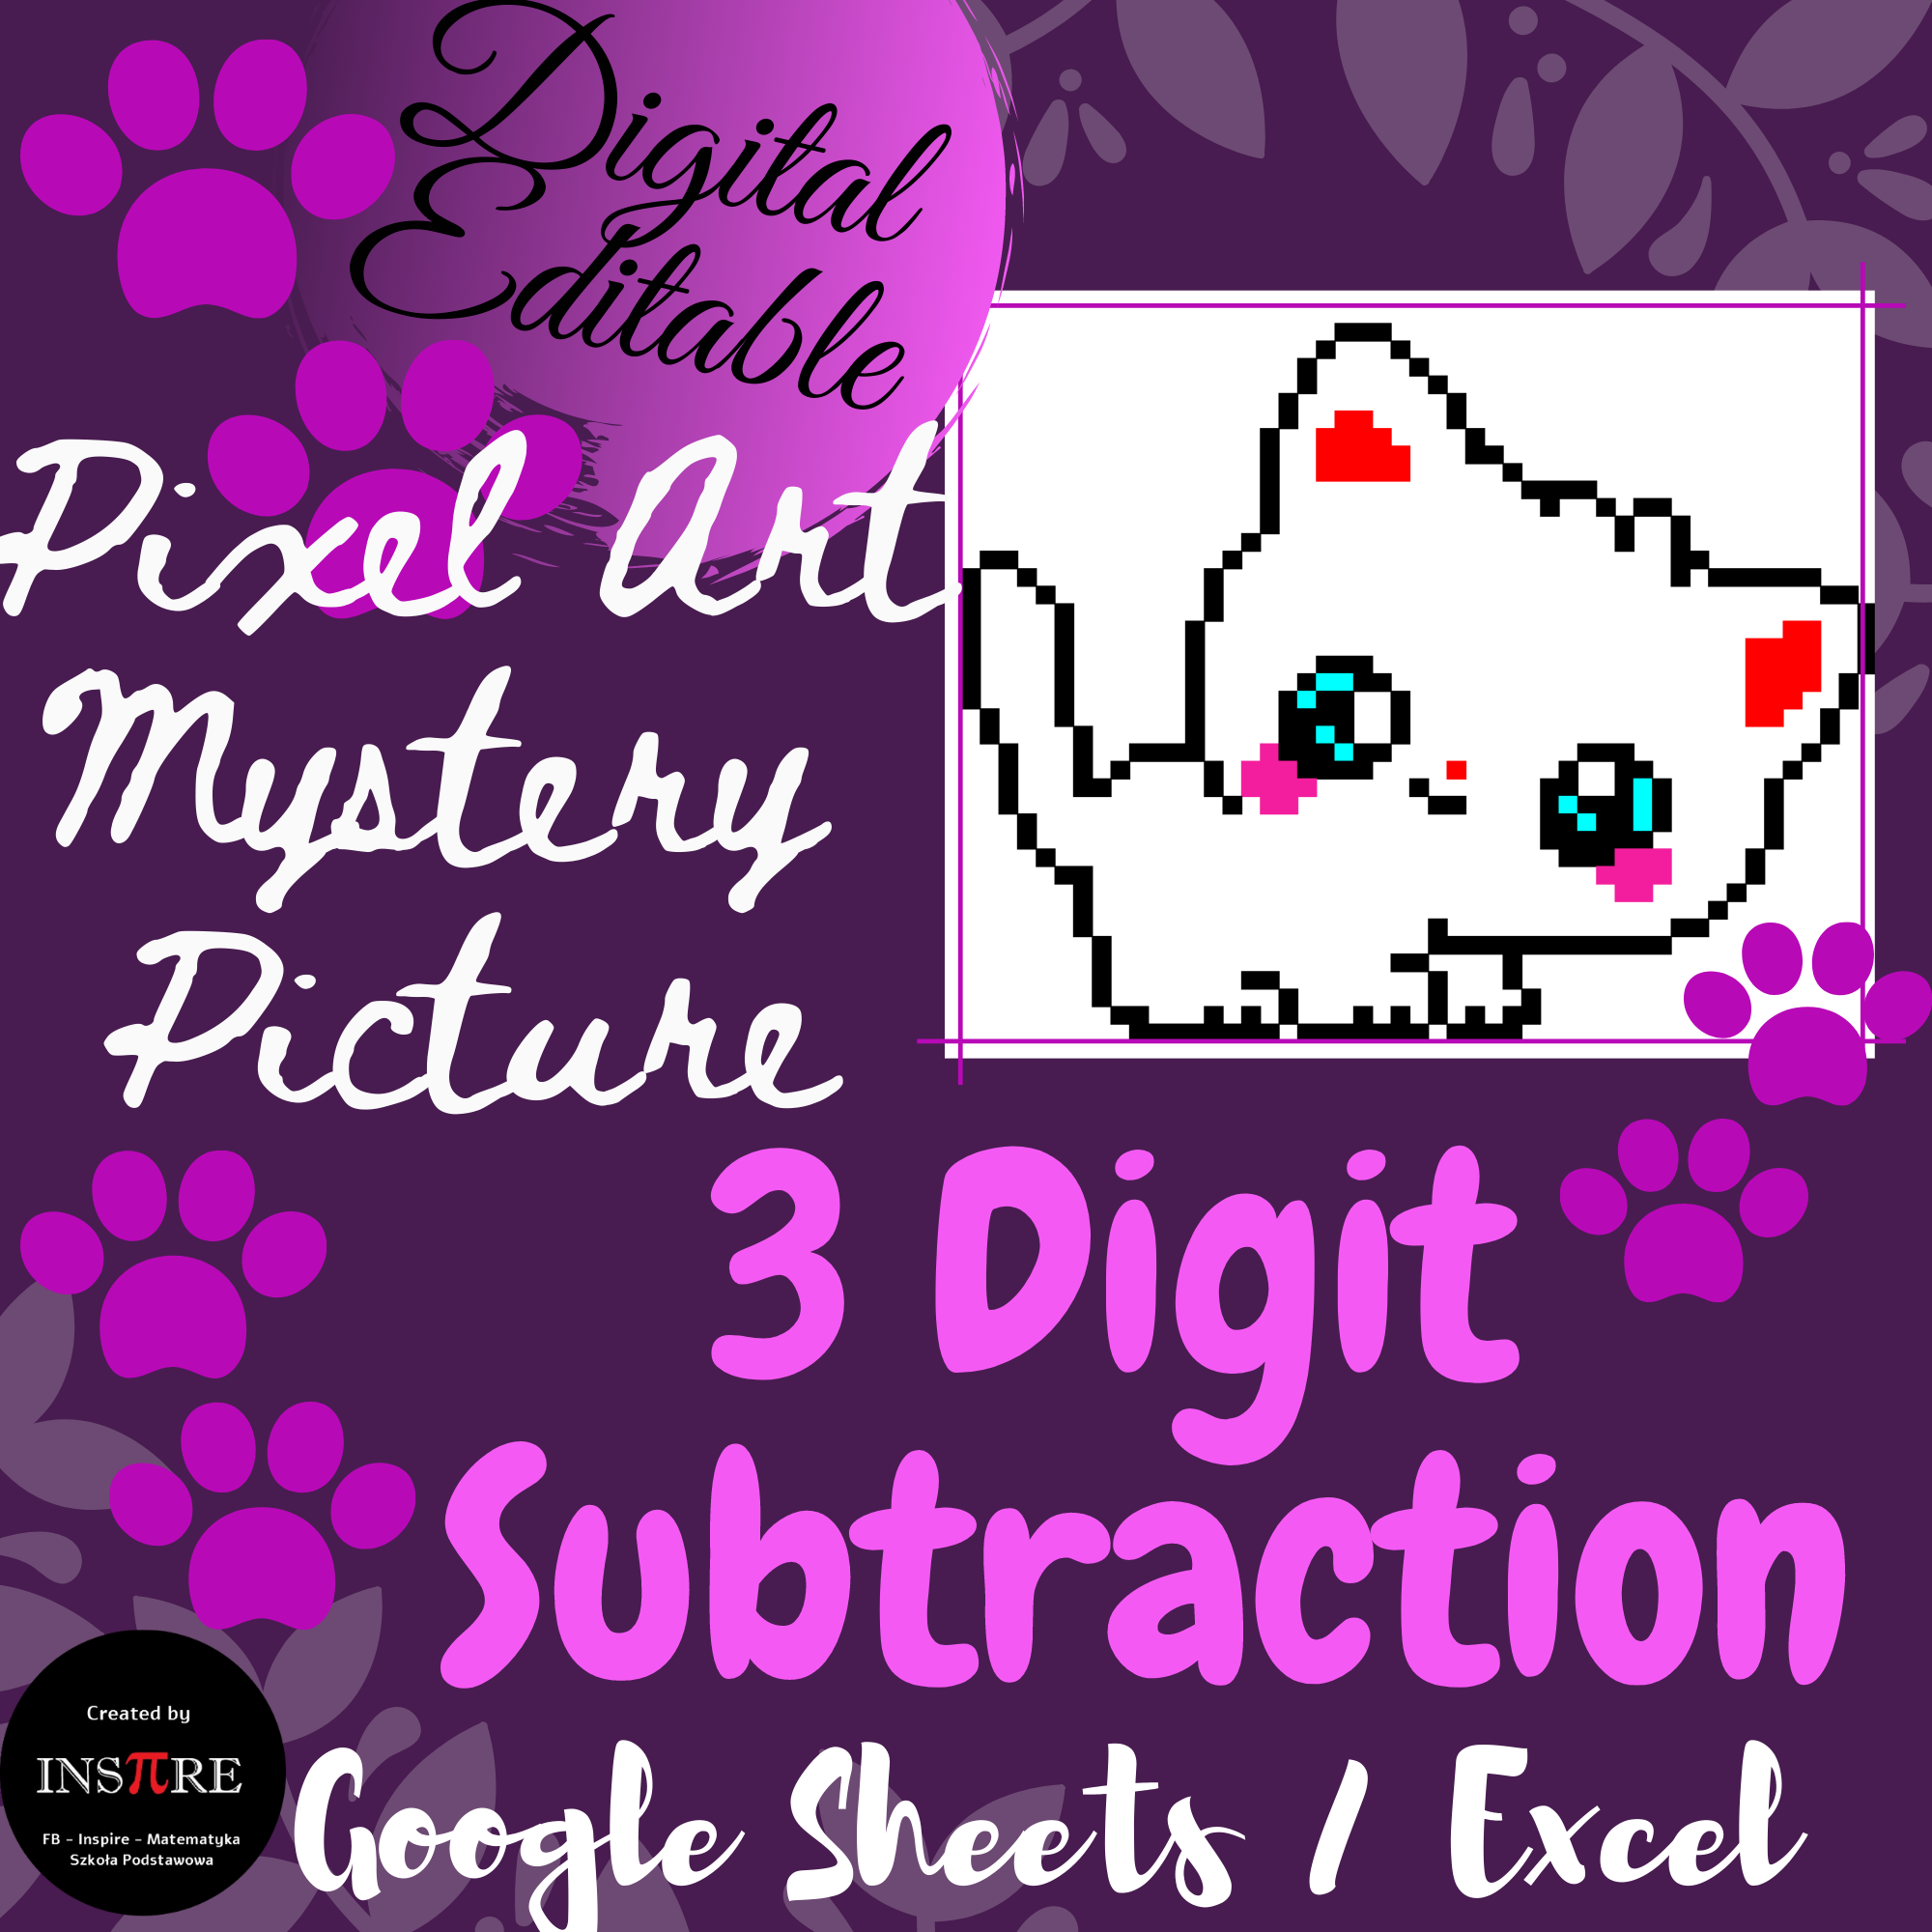 3 Digit Subtraction With Regrouping Cat Math Pixel Art Mystery Picture Editable In 2021 Math Elementary Math Lessons Mathematics Worksheets [ 2000 x 2000 Pixel ]